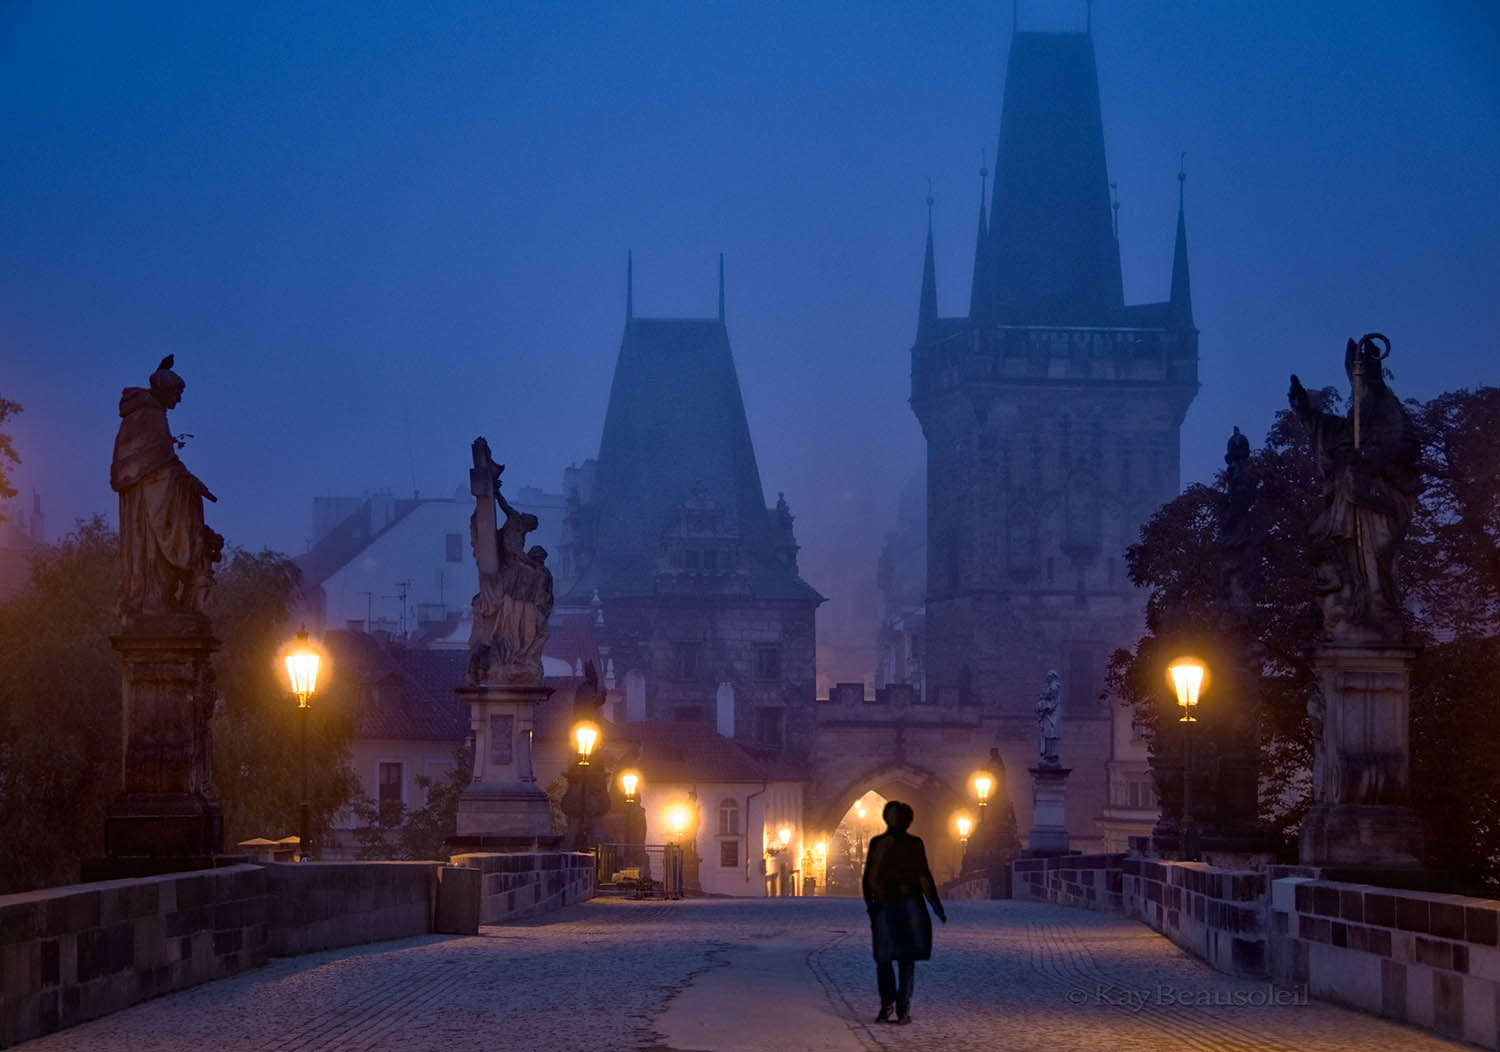 A Sense of Place:  FIRST LIGHT ON THE CHARLES BRIDGE